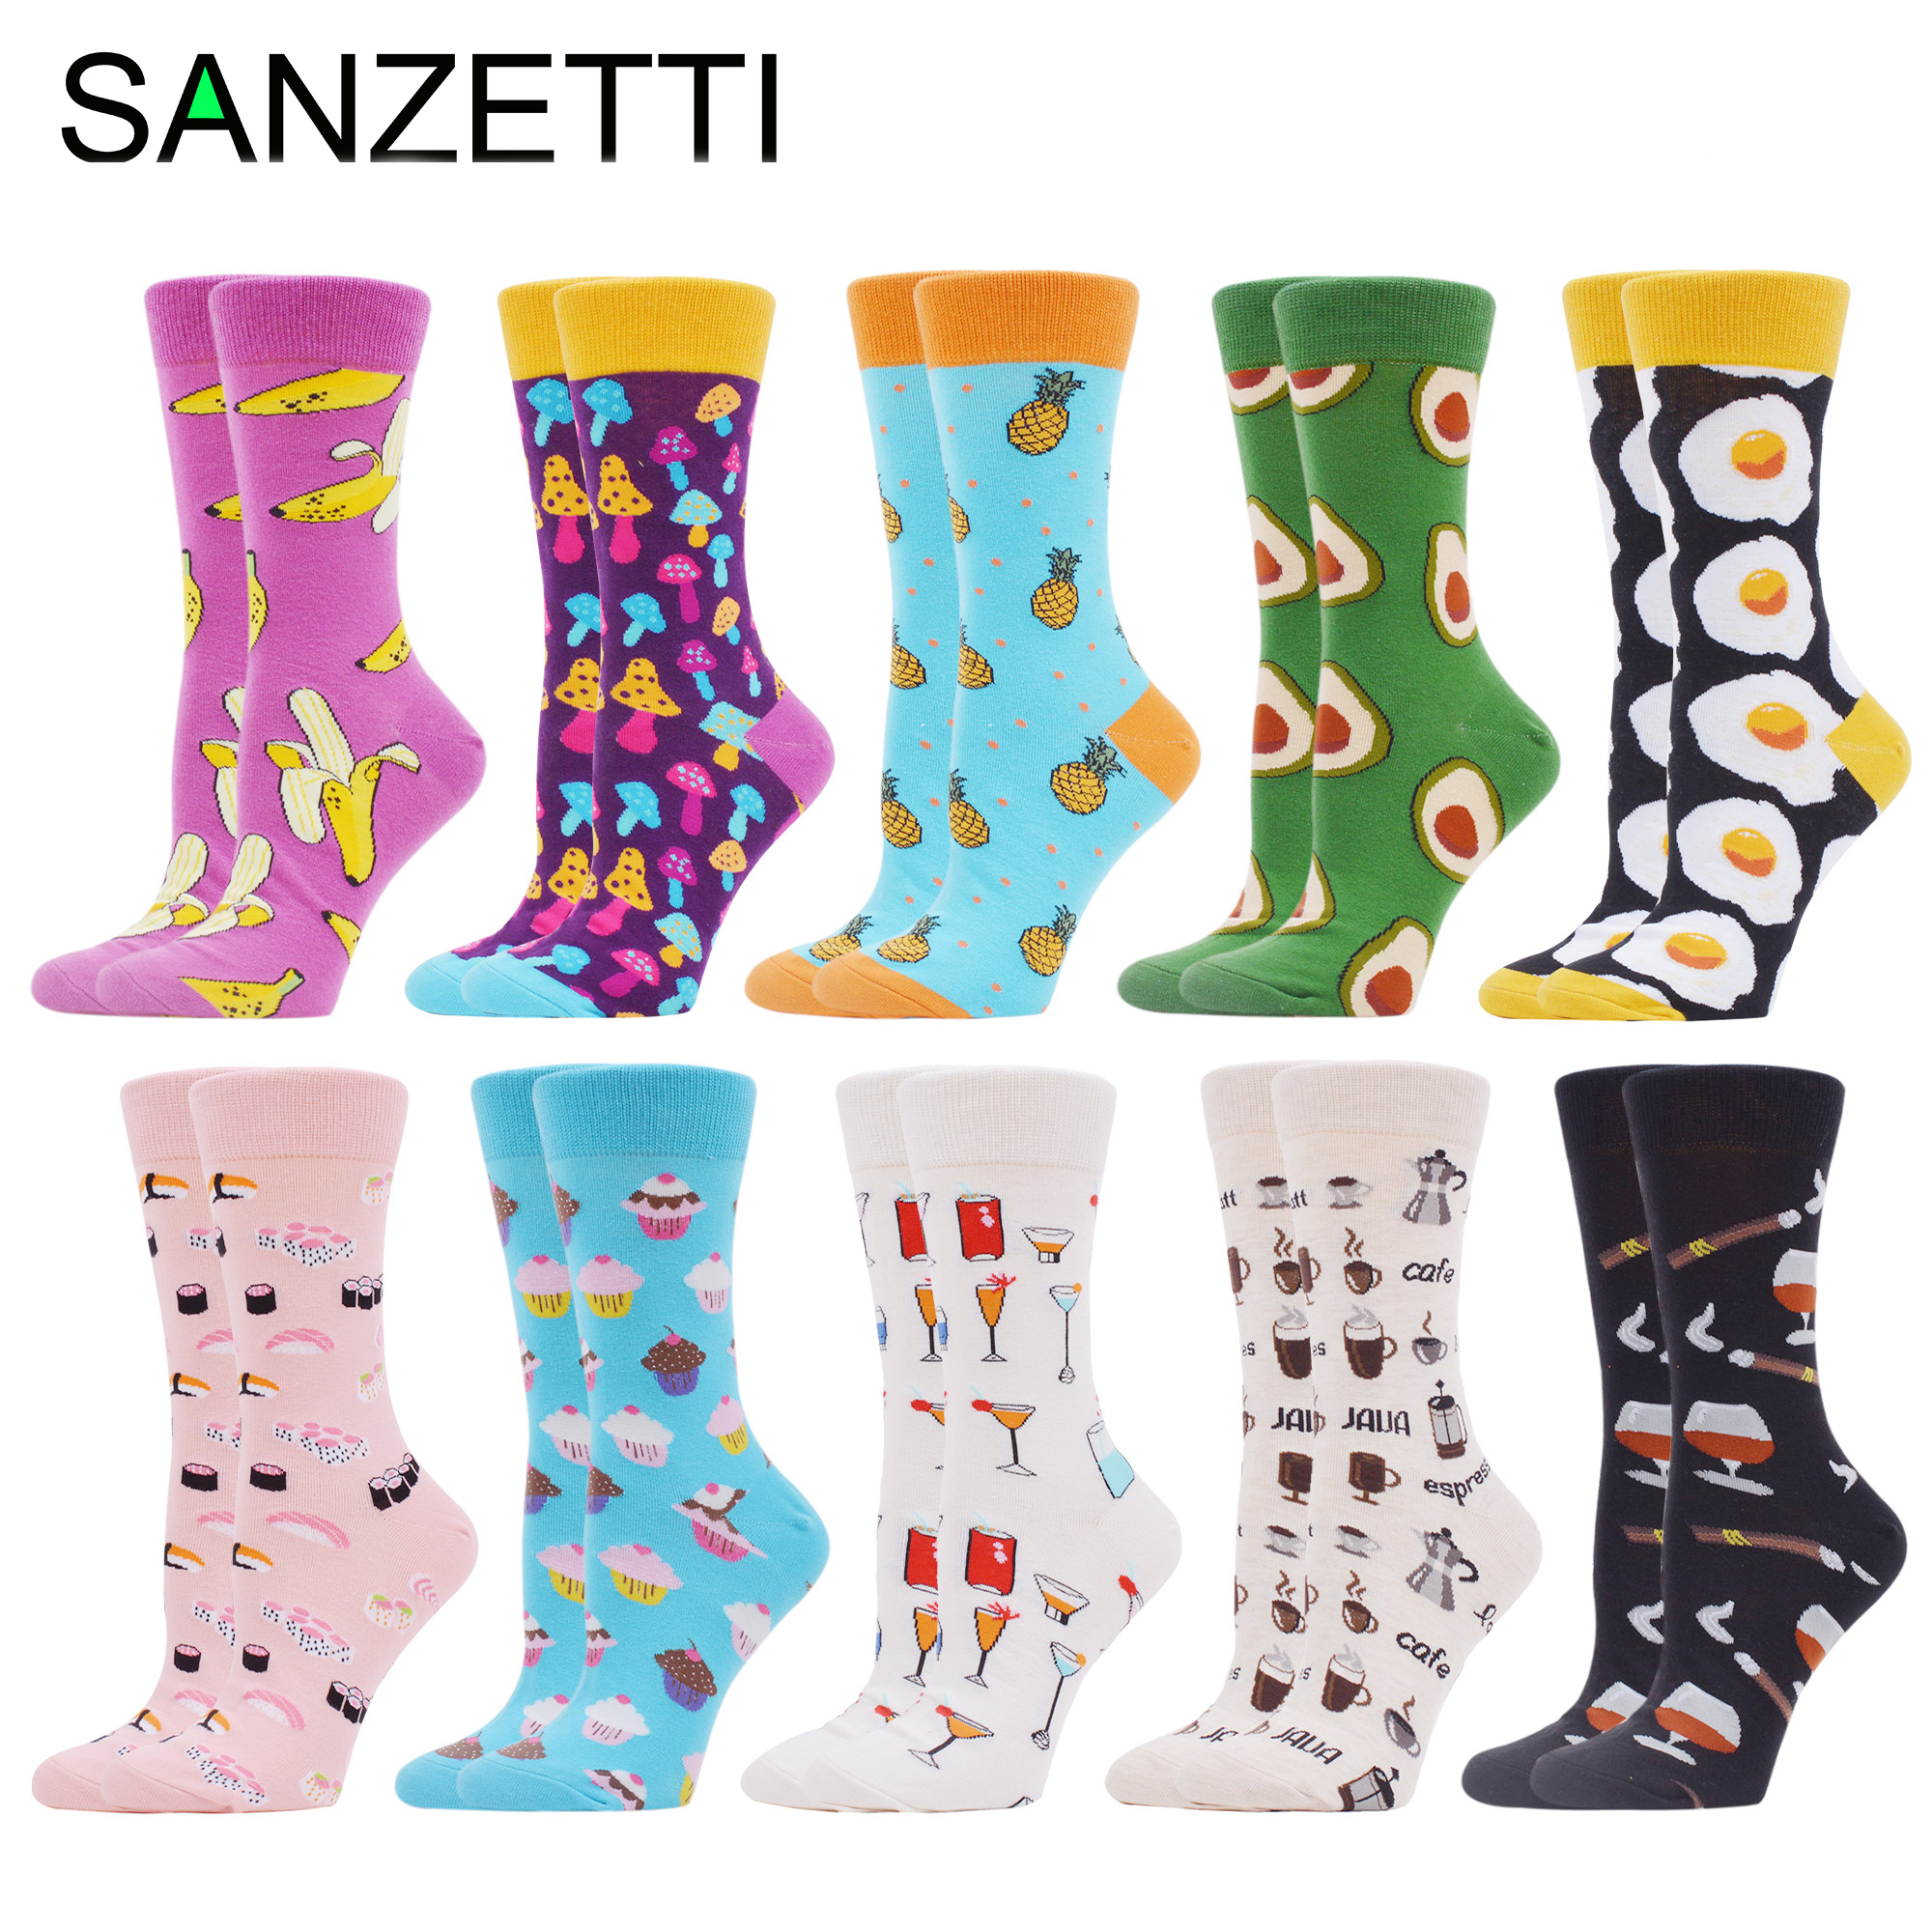 SANZETTI New Women\'s Socks Funny Colorful Combed Cotton Home Comfortable Donut Ice Cream Fresh Fairy Wedding Gift Party Socks